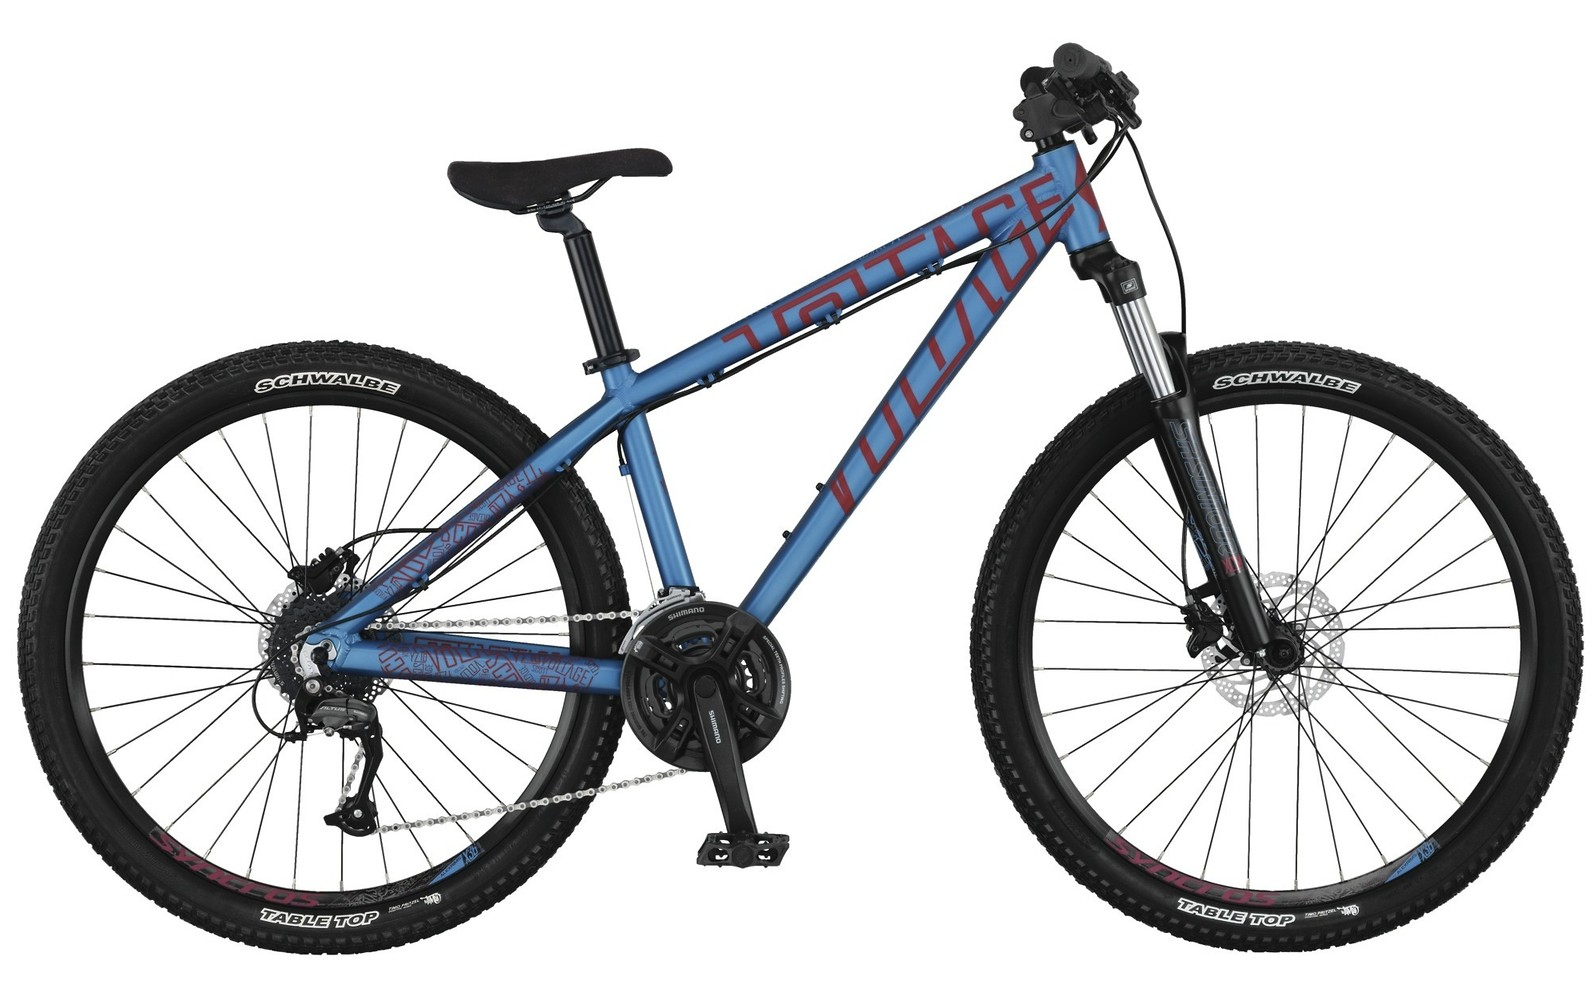 2014 Scott Voltage YZ 20 Bike SCOTT Voltage YZ 20 Bike - blue